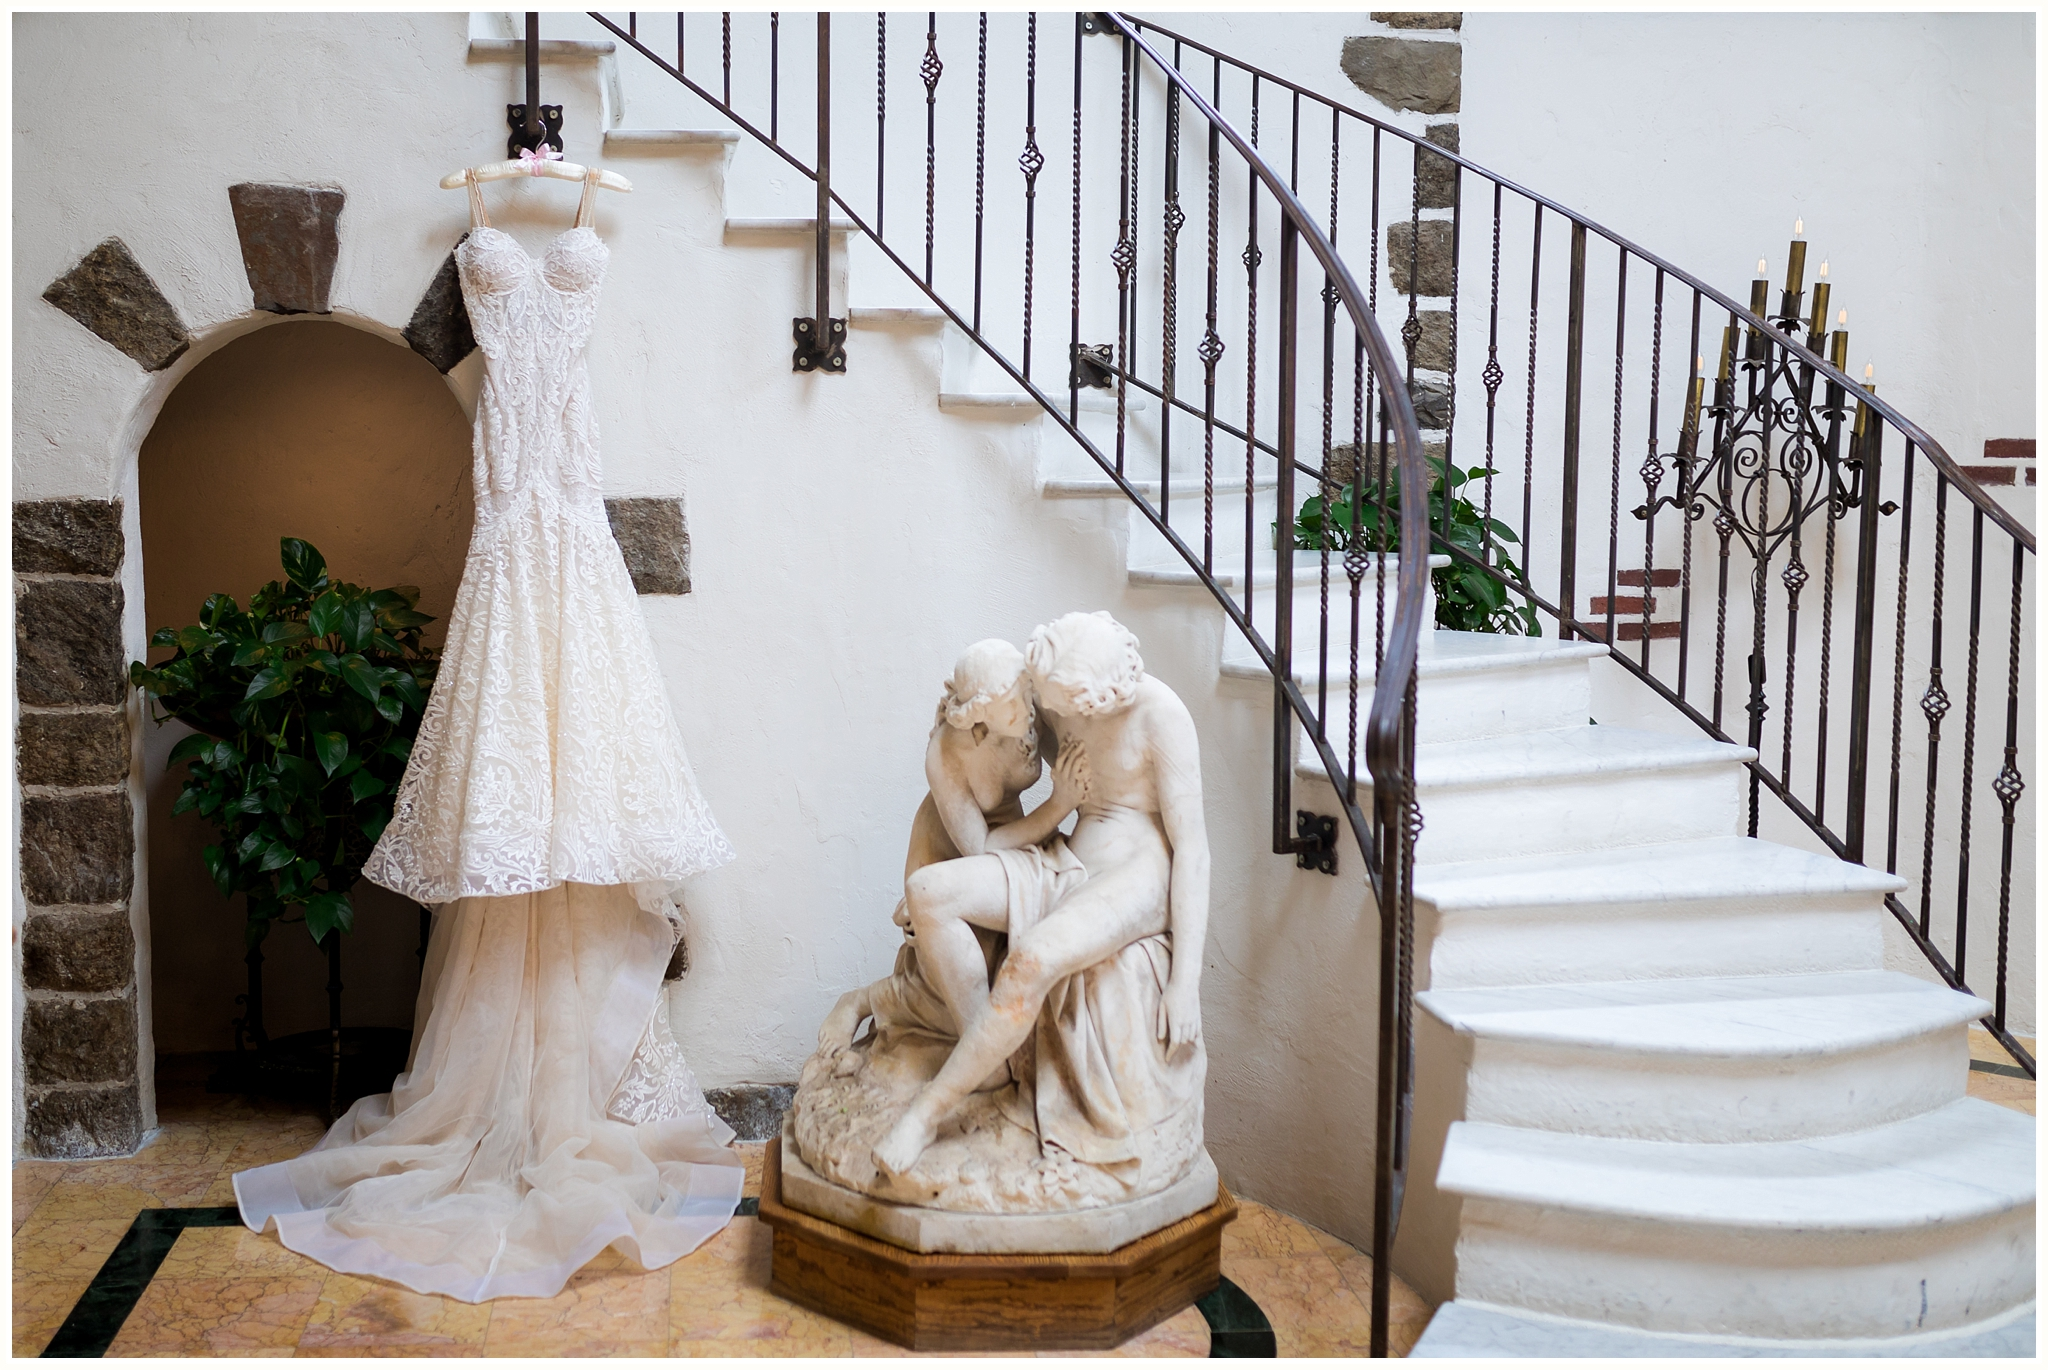 Pleasantdale Chateau Wedding NJ Wedding NYC Wedding Photographer_0001.jpg